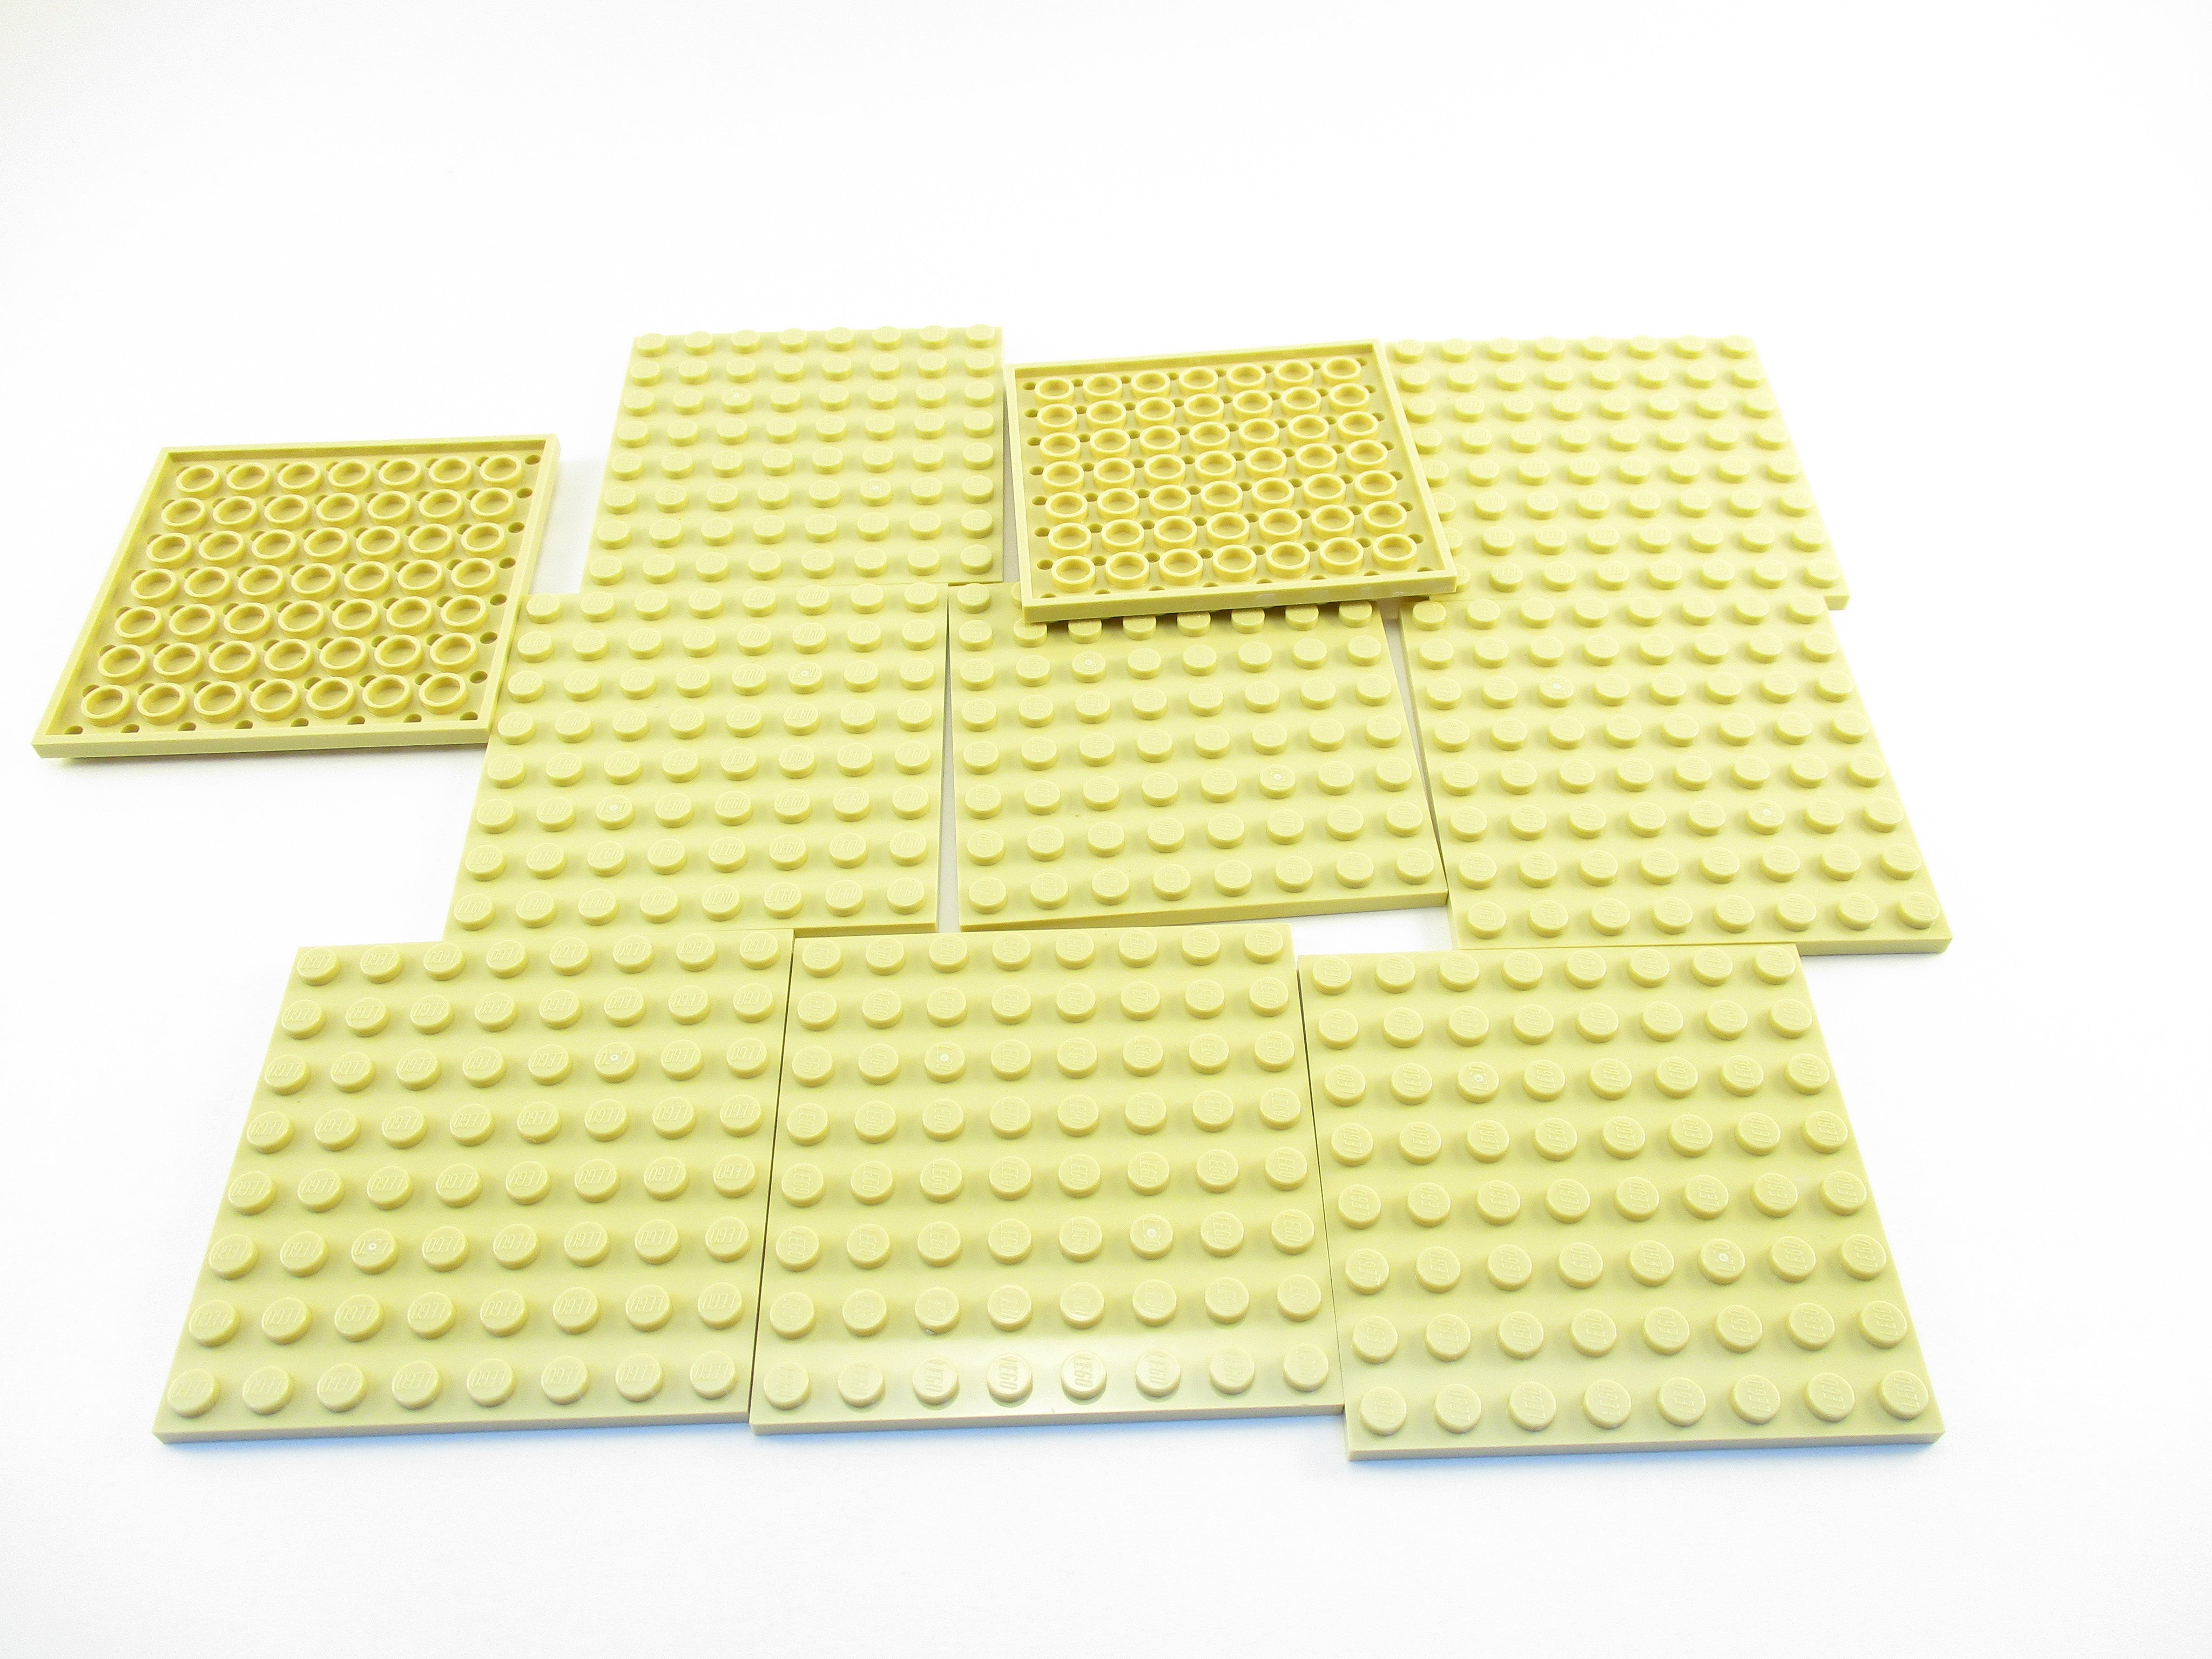 LEGO Tan Plate 8x8 Lot of 10 Parts Pieces 41539